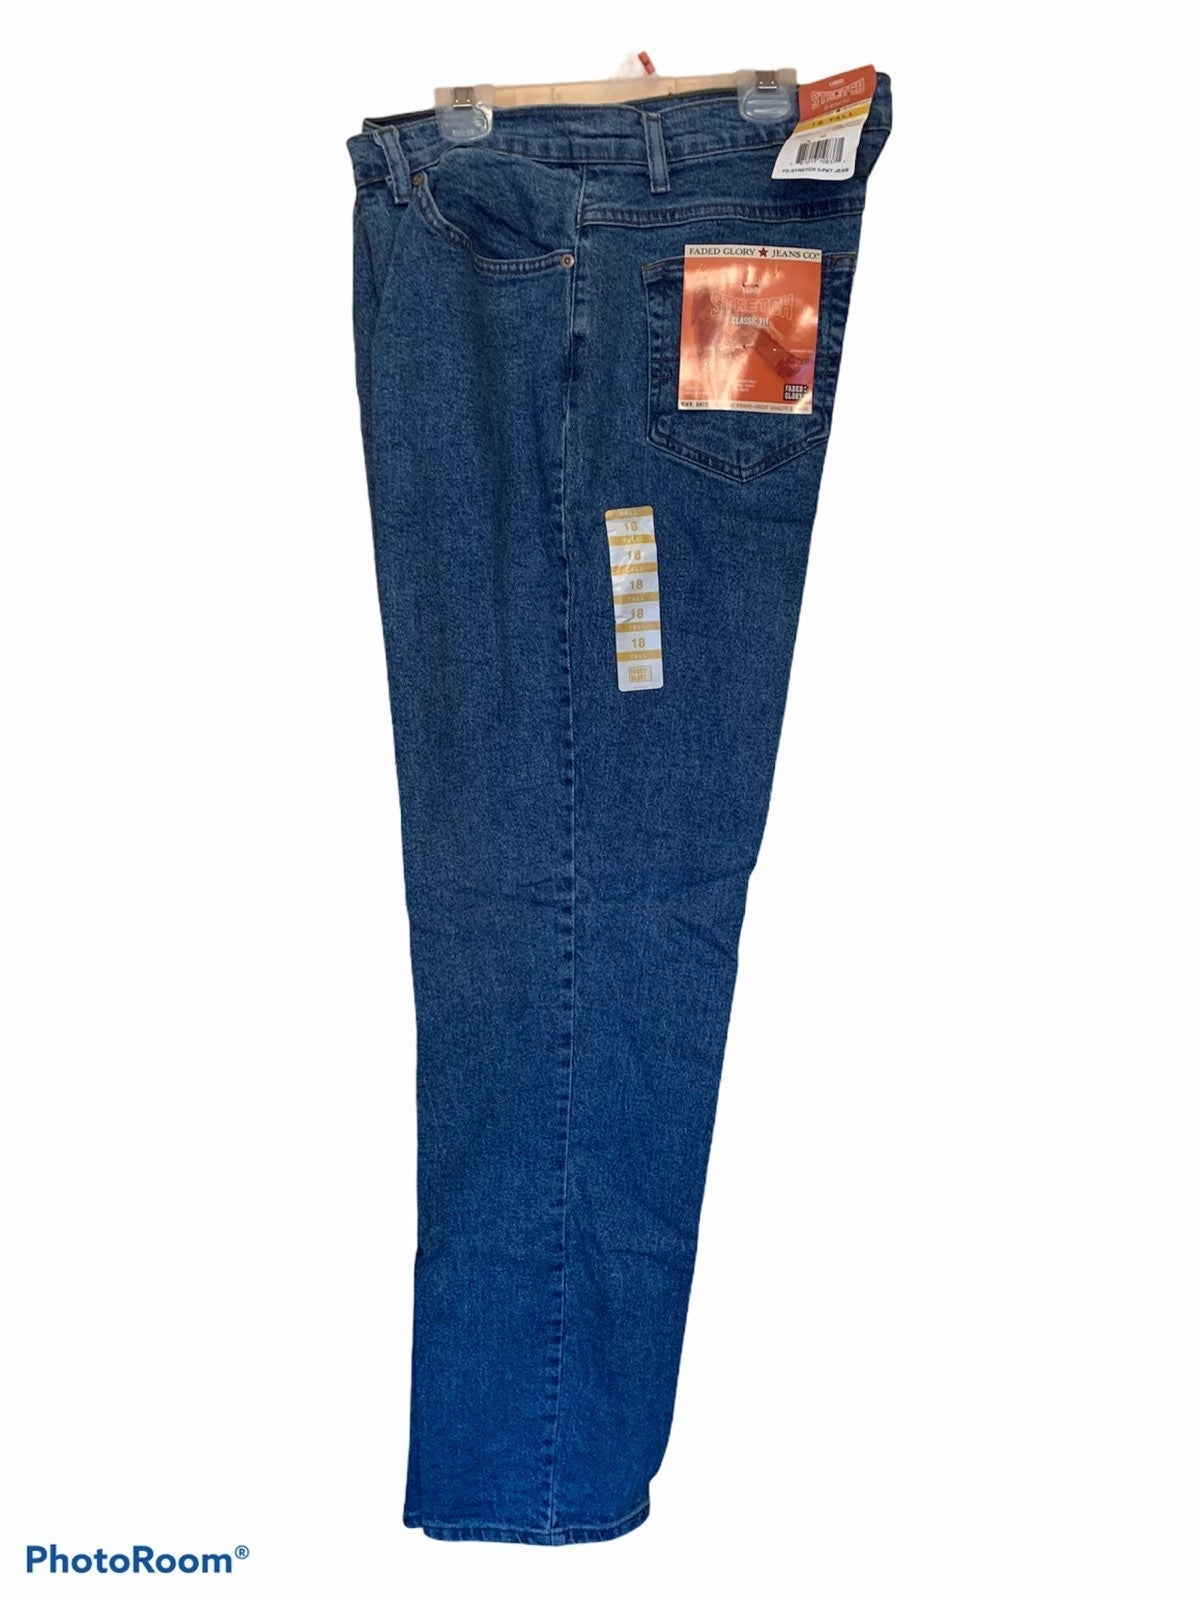 VTG Faded Glory Women's Jeans 18 Tall